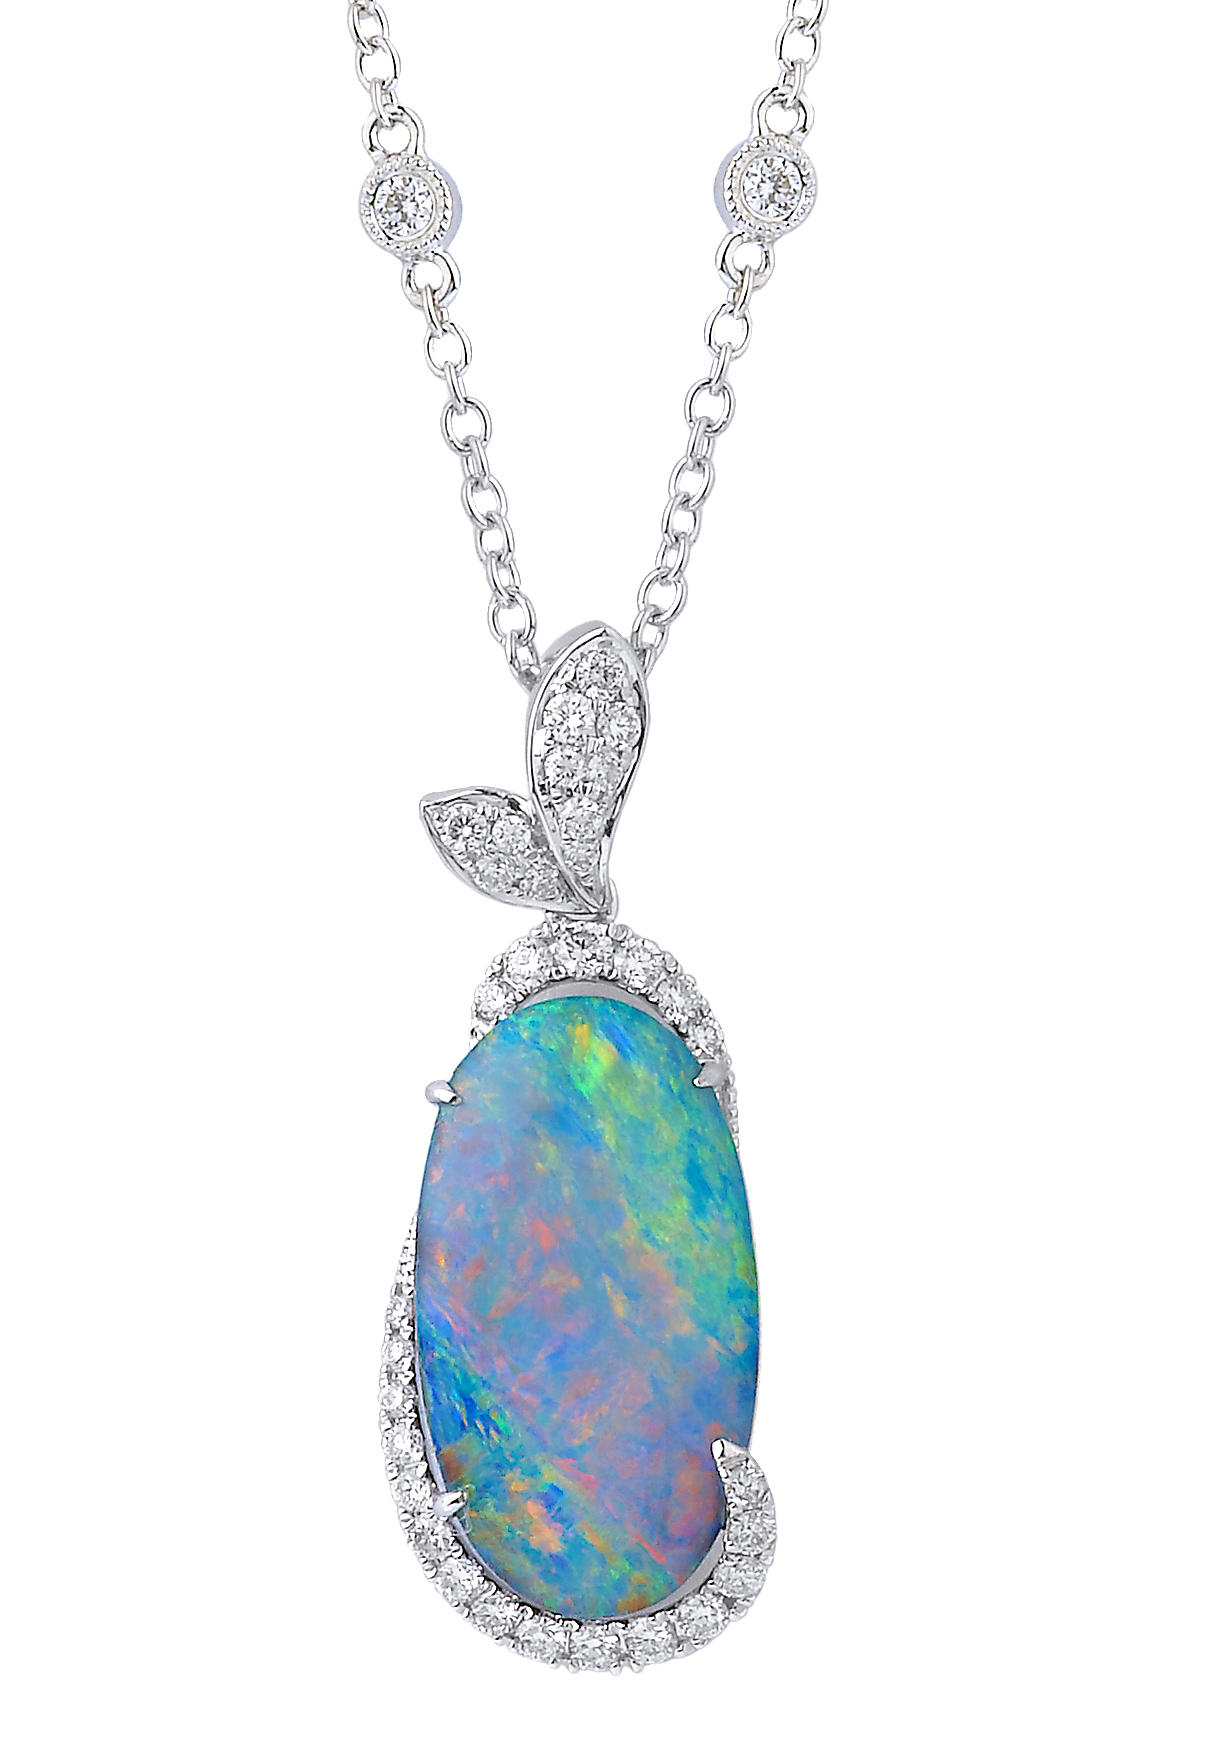 Supreme Jewelry opal pendant | JCK On Your Market